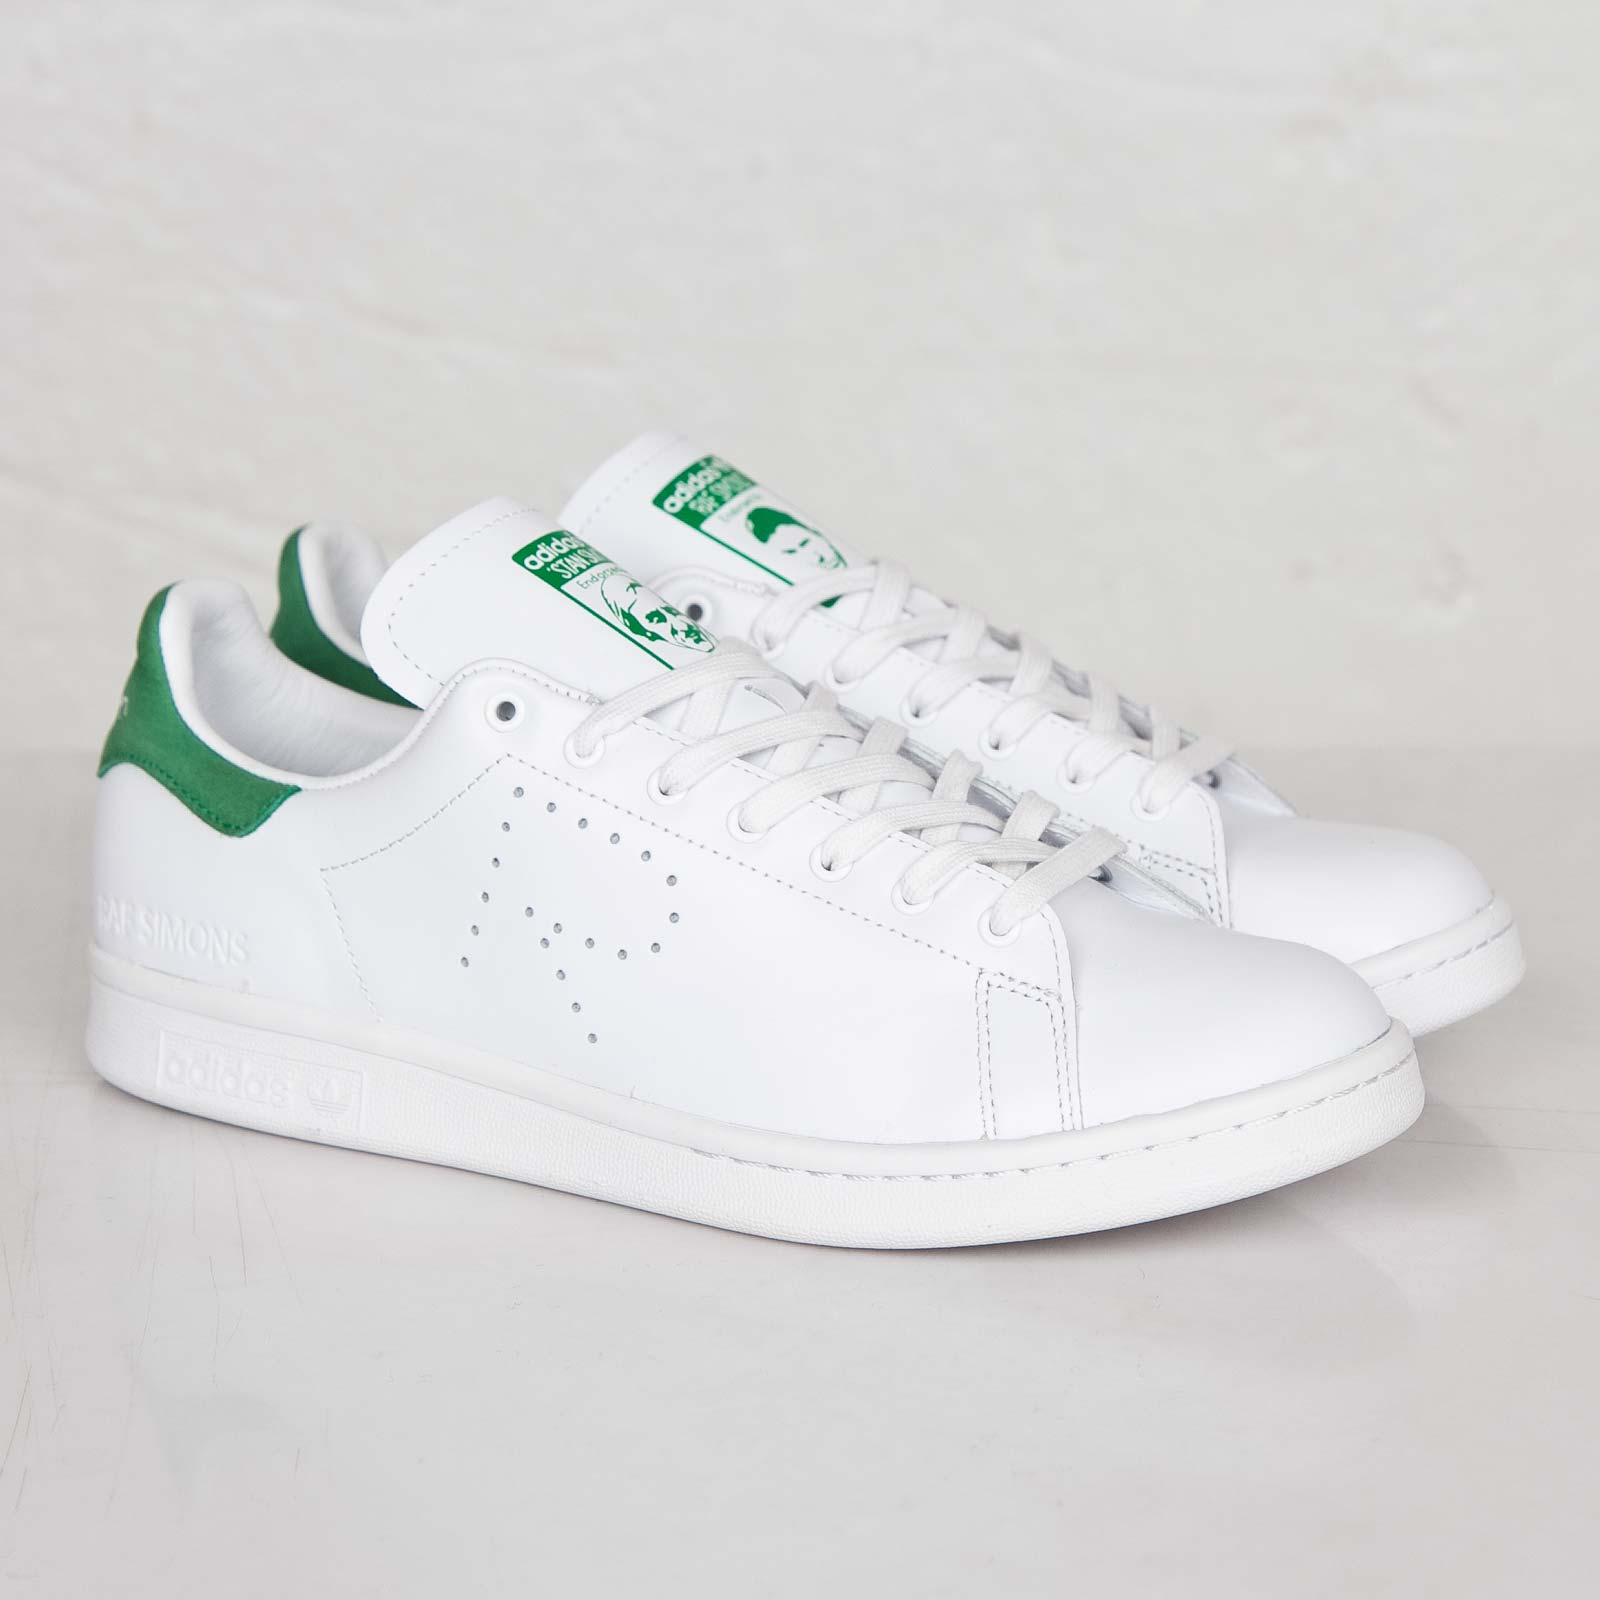 release date c7683 1a98d adidas Raf Simons Stan Smith